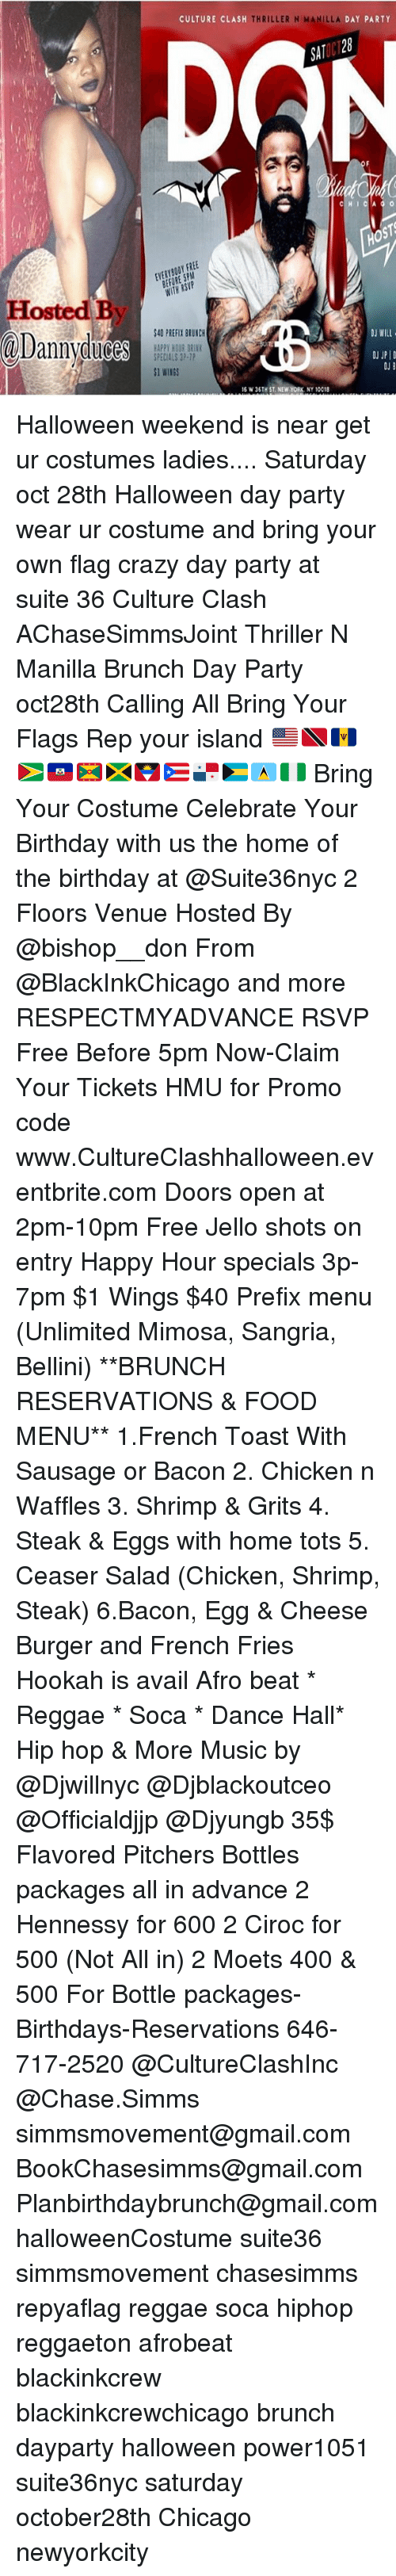 Birthday, Chicago, and Crazy: CULTURE CLASH  THRILLER N MANILLA  DAY PARTY  SAT  HO5  BEFORE 5PM  WITH RSVP  .  Hosted By  @Dannydude ,.  @Dannyoluces! 11  40 PREFIX BRUNCH  APPY HOUR BRIN  SPECIALS 3P-1P  $1 WINGS  OJ WILL  OJ JPID  6 W 36TH ST. NEW YORK, NY 10018 Halloween weekend is near get ur costumes ladies.... Saturday oct 28th Halloween day party wear ur costume and bring your own flag crazy day party at suite 36 Culture Clash AChaseSimmsJoint Thriller N Manilla Brunch Day Party oct28th Calling All Bring Your Flags Rep your island 🇺🇸🇹🇹🇧🇧🇬🇾🇭🇹🇬🇩🇯🇲🇦🇬🇵🇷🇵🇦🇧🇸🇱🇨🇳🇬 Bring Your Costume Celebrate Your Birthday with us the home of the birthday at @Suite36nyc 2 Floors Venue Hosted By @bishop__don From @BlackInkChicago and more RESPECTMYADVANCE RSVP Free Before 5pm Now-Claim Your Tickets HMU for Promo code www.CultureClashhalloween.eventbrite.com Doors open at 2pm-10pm Free Jello shots on entry Happy Hour specials 3p-7pm $1 Wings $40 Prefix menu (Unlimited Mimosa, Sangria, Bellini) **BRUNCH RESERVATIONS & FOOD MENU** 1.French Toast With Sausage or Bacon 2. Chicken n Waffles 3. Shrimp & Grits 4. Steak & Eggs with home tots 5. Ceaser Salad (Chicken, Shrimp, Steak) 6.Bacon, Egg & Cheese Burger and French Fries Hookah is avail Afro beat * Reggae * Soca * Dance Hall* Hip hop & More Music by @Djwillnyc @Djblackoutceo @Officialdjjp @Djyungb 35$ Flavored Pitchers Bottles packages all in advance 2 Hennessy for 600 2 Ciroc for 500 (Not All in) 2 Moets 400 & 500 For Bottle packages-Birthdays-Reservations 646-717-2520 @CultureClashInc @Chase.Simms simmsmovement@gmail.com BookChasesimms@gmail.com Planbirthdaybrunch@gmail.com halloweenCostume suite36 simmsmovement chasesimms repyaflag reggae soca hiphop reggaeton afrobeat blackinkcrew blackinkcrewchicago brunch dayparty halloween power1051 suite36nyc saturday october28th Chicago newyorkcity